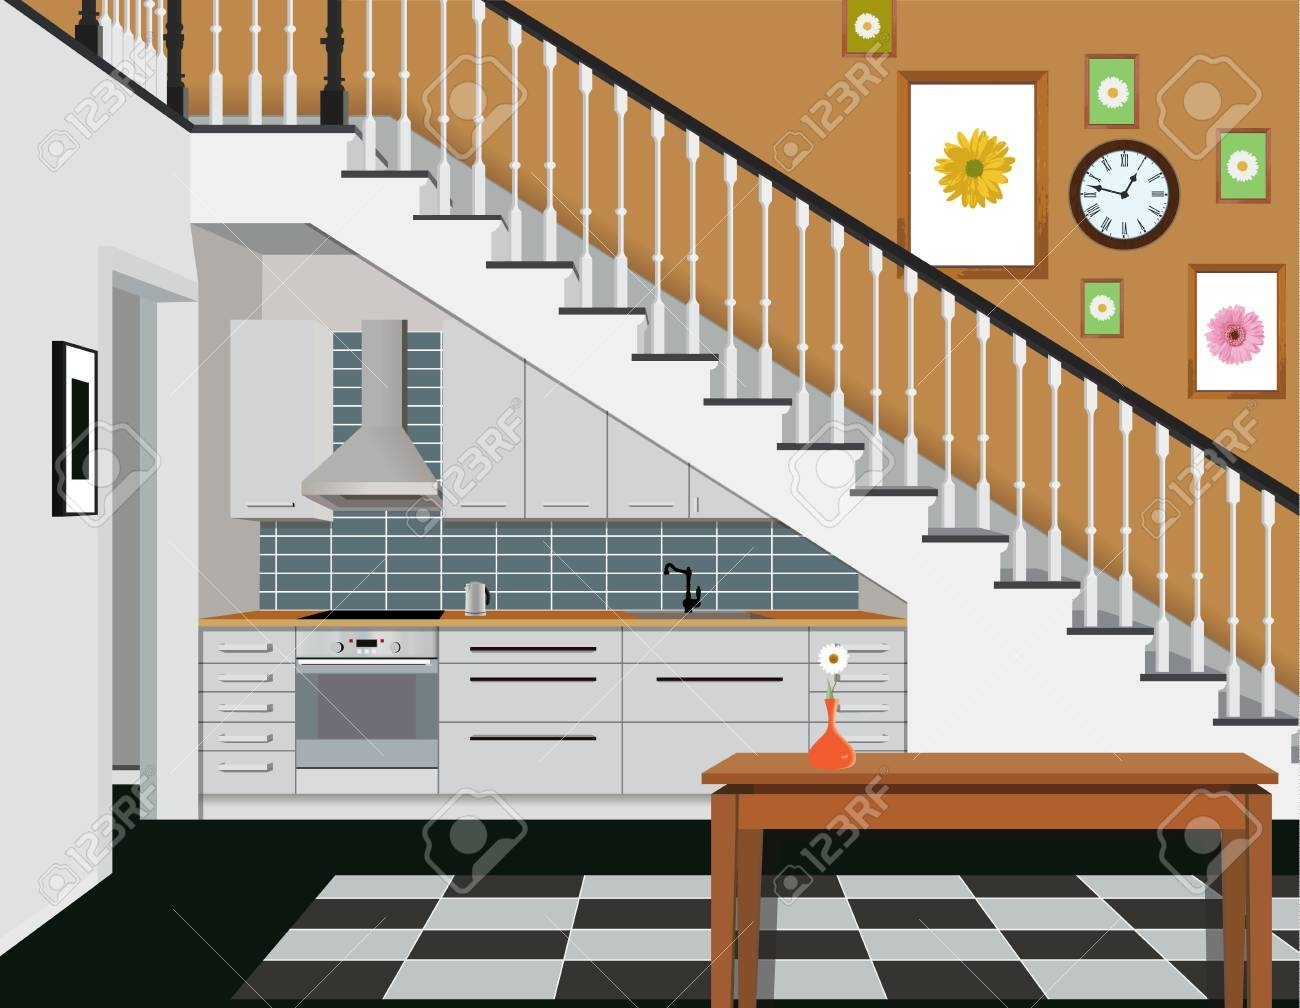 Interior Of The Kitchen Under The Stairs With Furniture Design | Kitchen Under Stairs Design | Stair Case | Wet Bar | Basement Stairs | Living Room | Basement Kitchenette